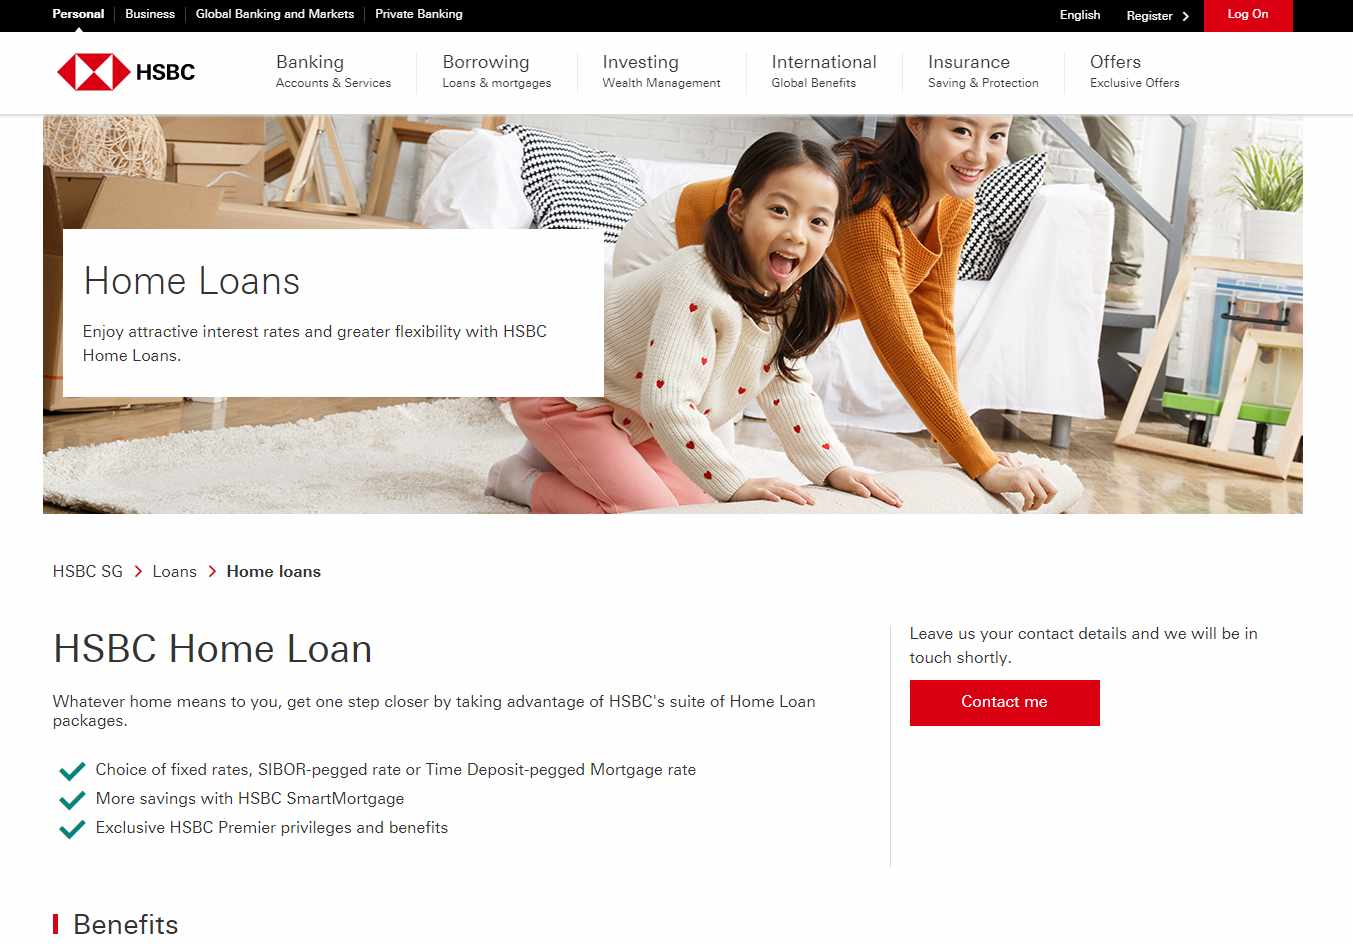 HSBC Top Home Loan Providers in Singapore